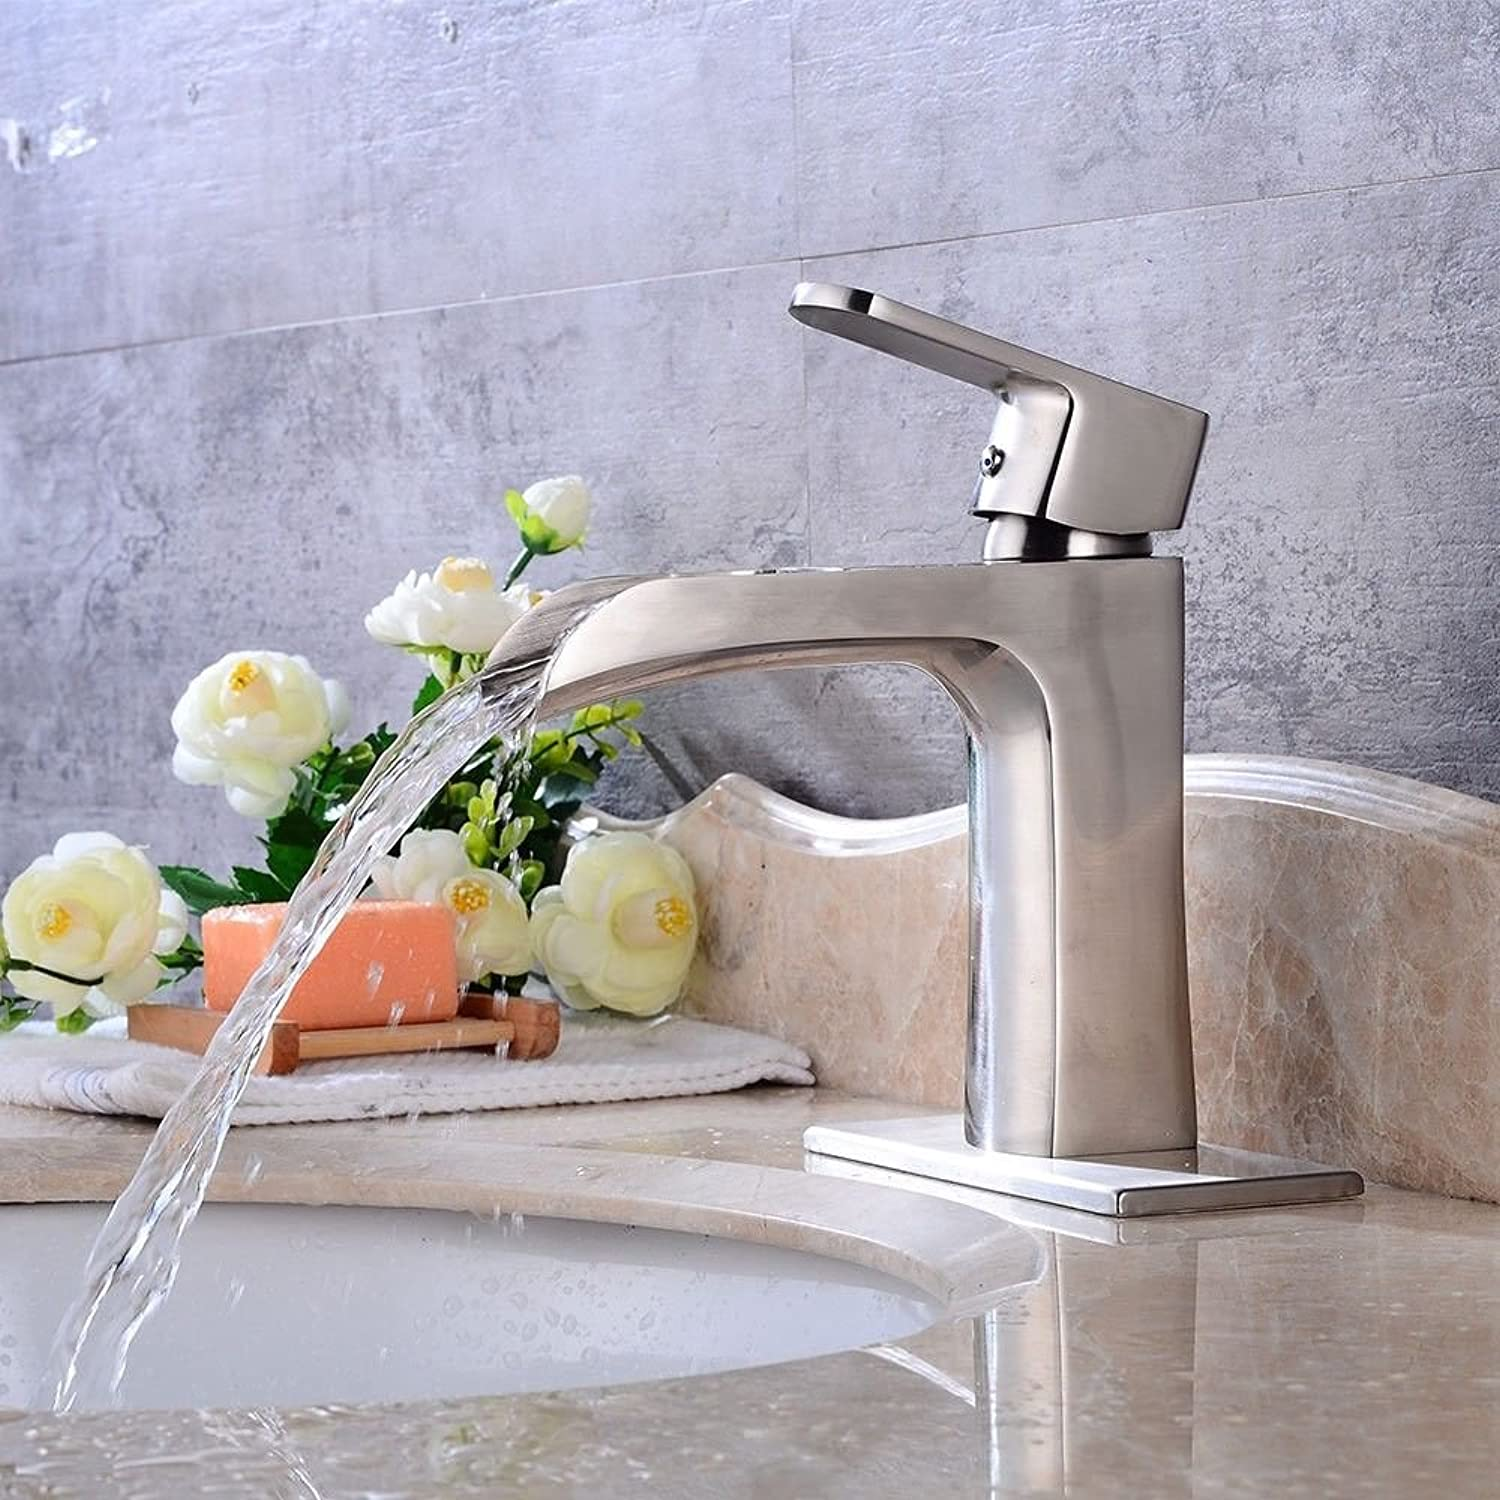 Lpophy Bathroom Sink Mixer Taps Faucet Bath Waterfall Cold and Hot Water Tap for Washroom Bathroom and Kitchen Vintage Brass Brushed Single Handle Single Hole Ceramic Valve Hot and Cold